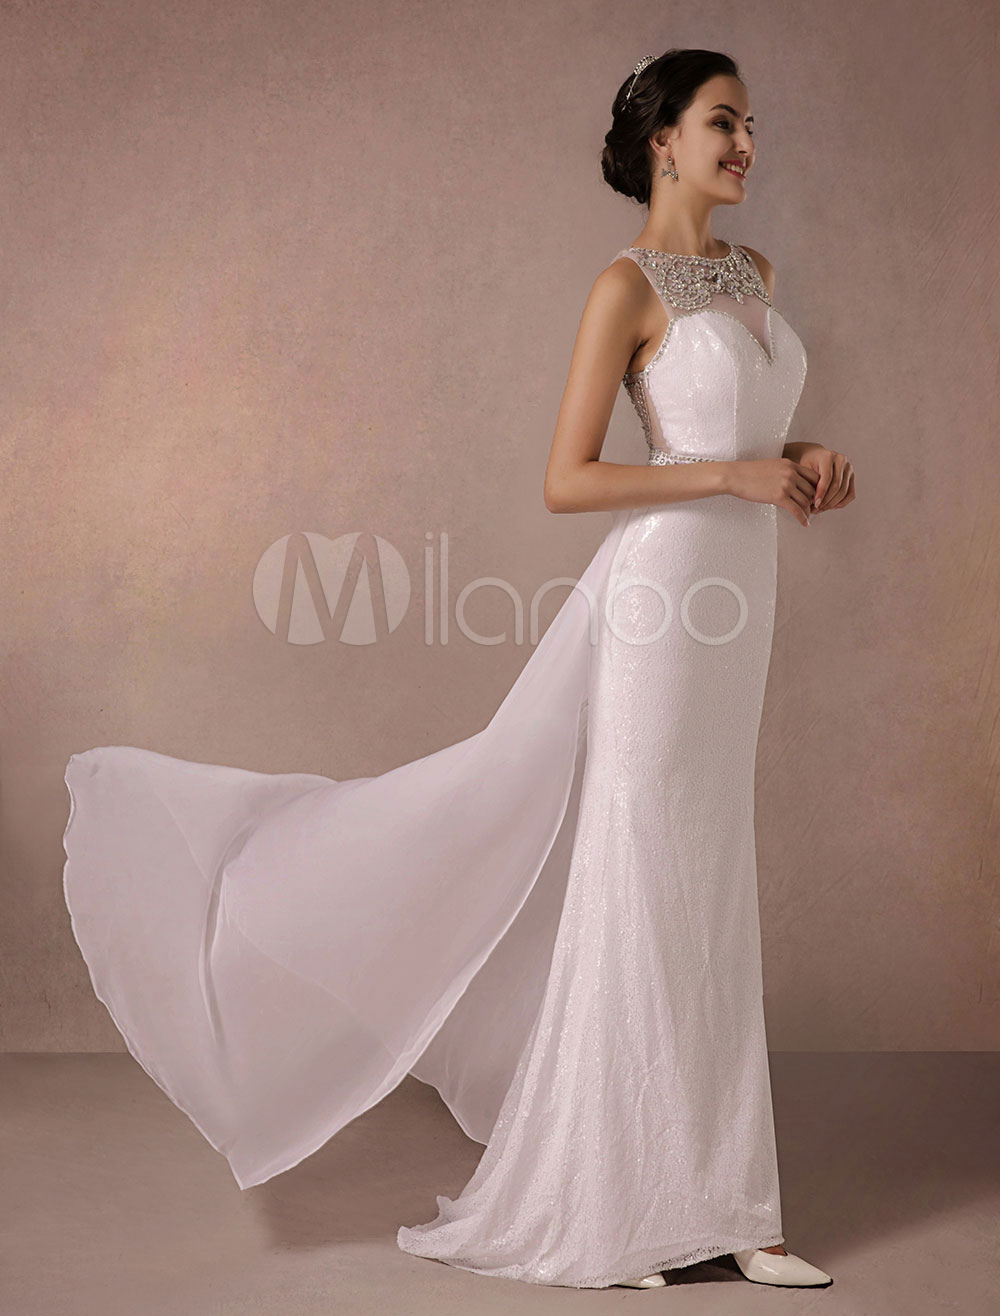 Sequin Evening Dress Beading Back Details Illusion Sexy Sheath Party Dress With Chiffon Court Train